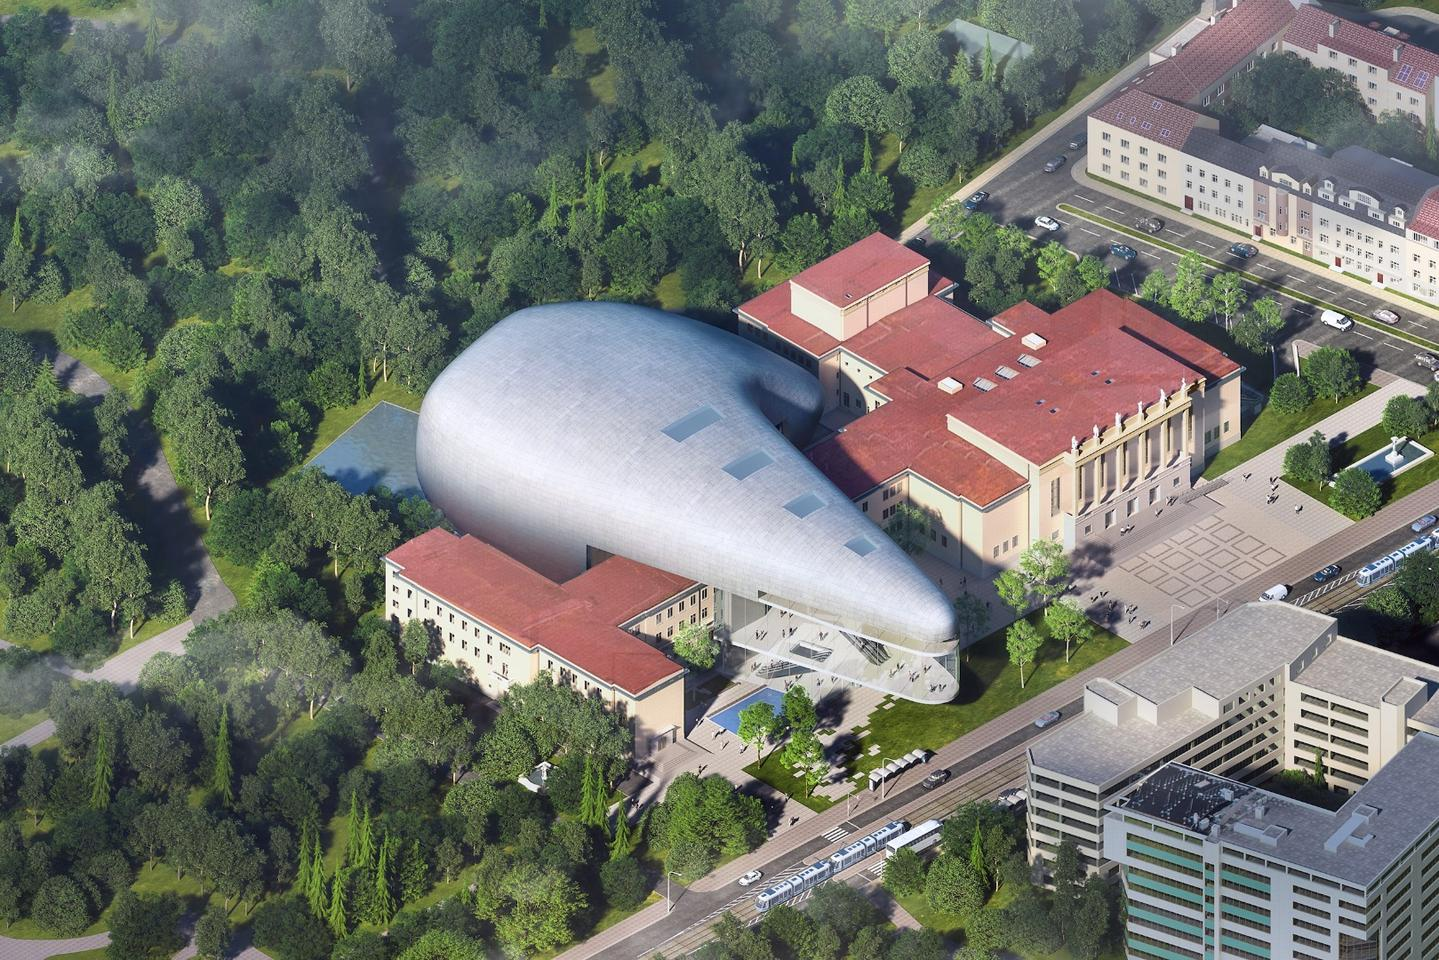 Assuming all goes to plan, the Ostrava Concert Hall is expected to be completed by 2023